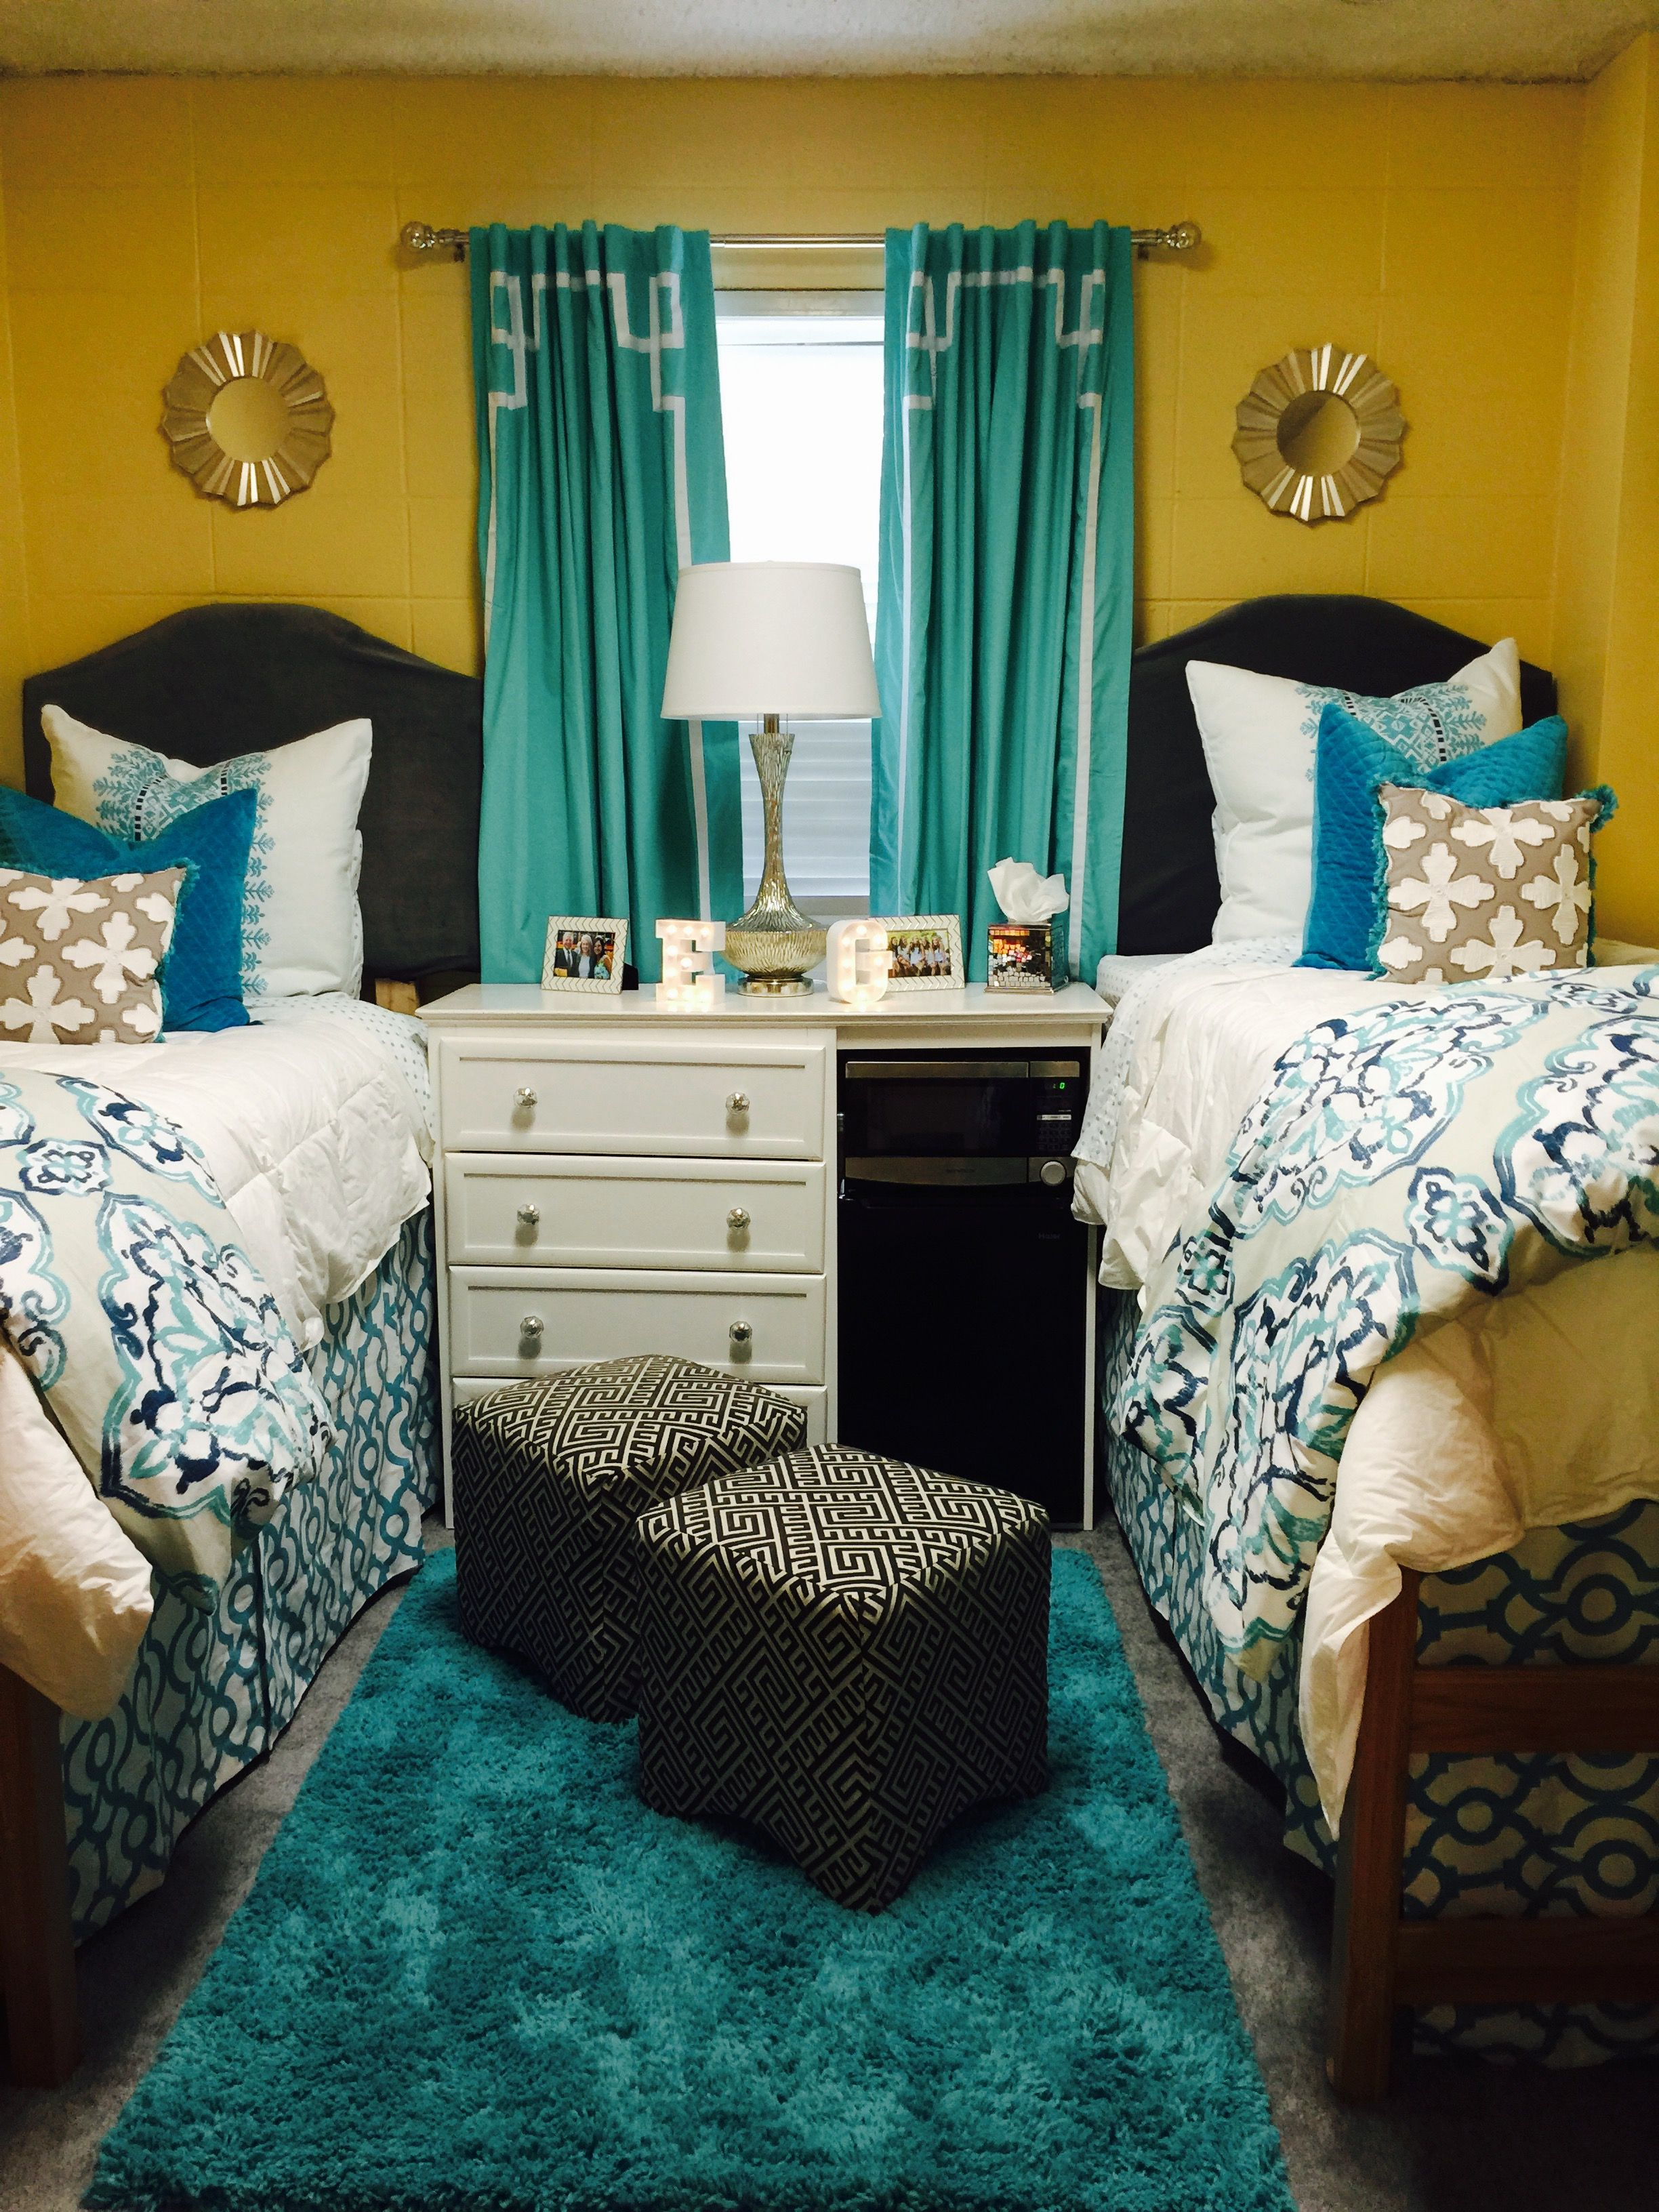 dorm img use apartment edit dormify blog decor your a in to ways trunk first